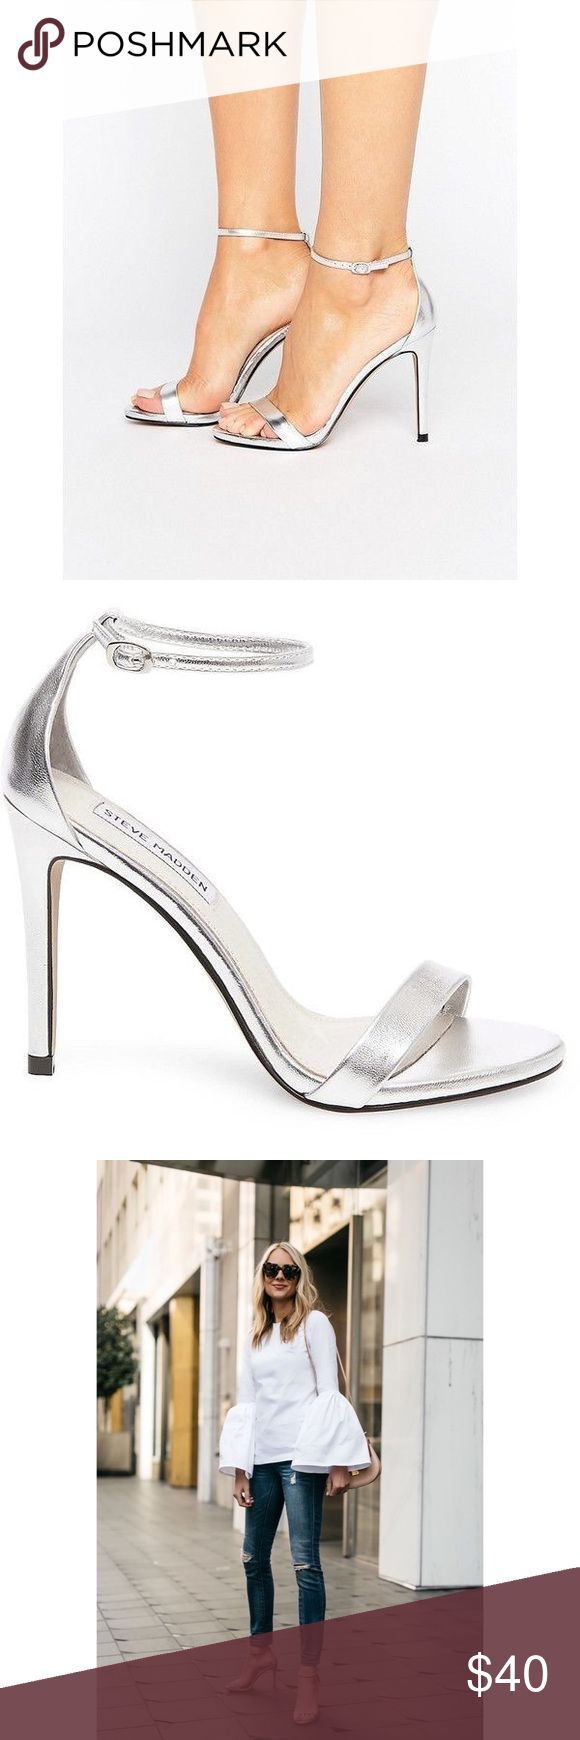 Steve Madden Silver Sandals Gorgeous silver heels. More pictures soon. Worn twice. Steve Madden Shoes Heels